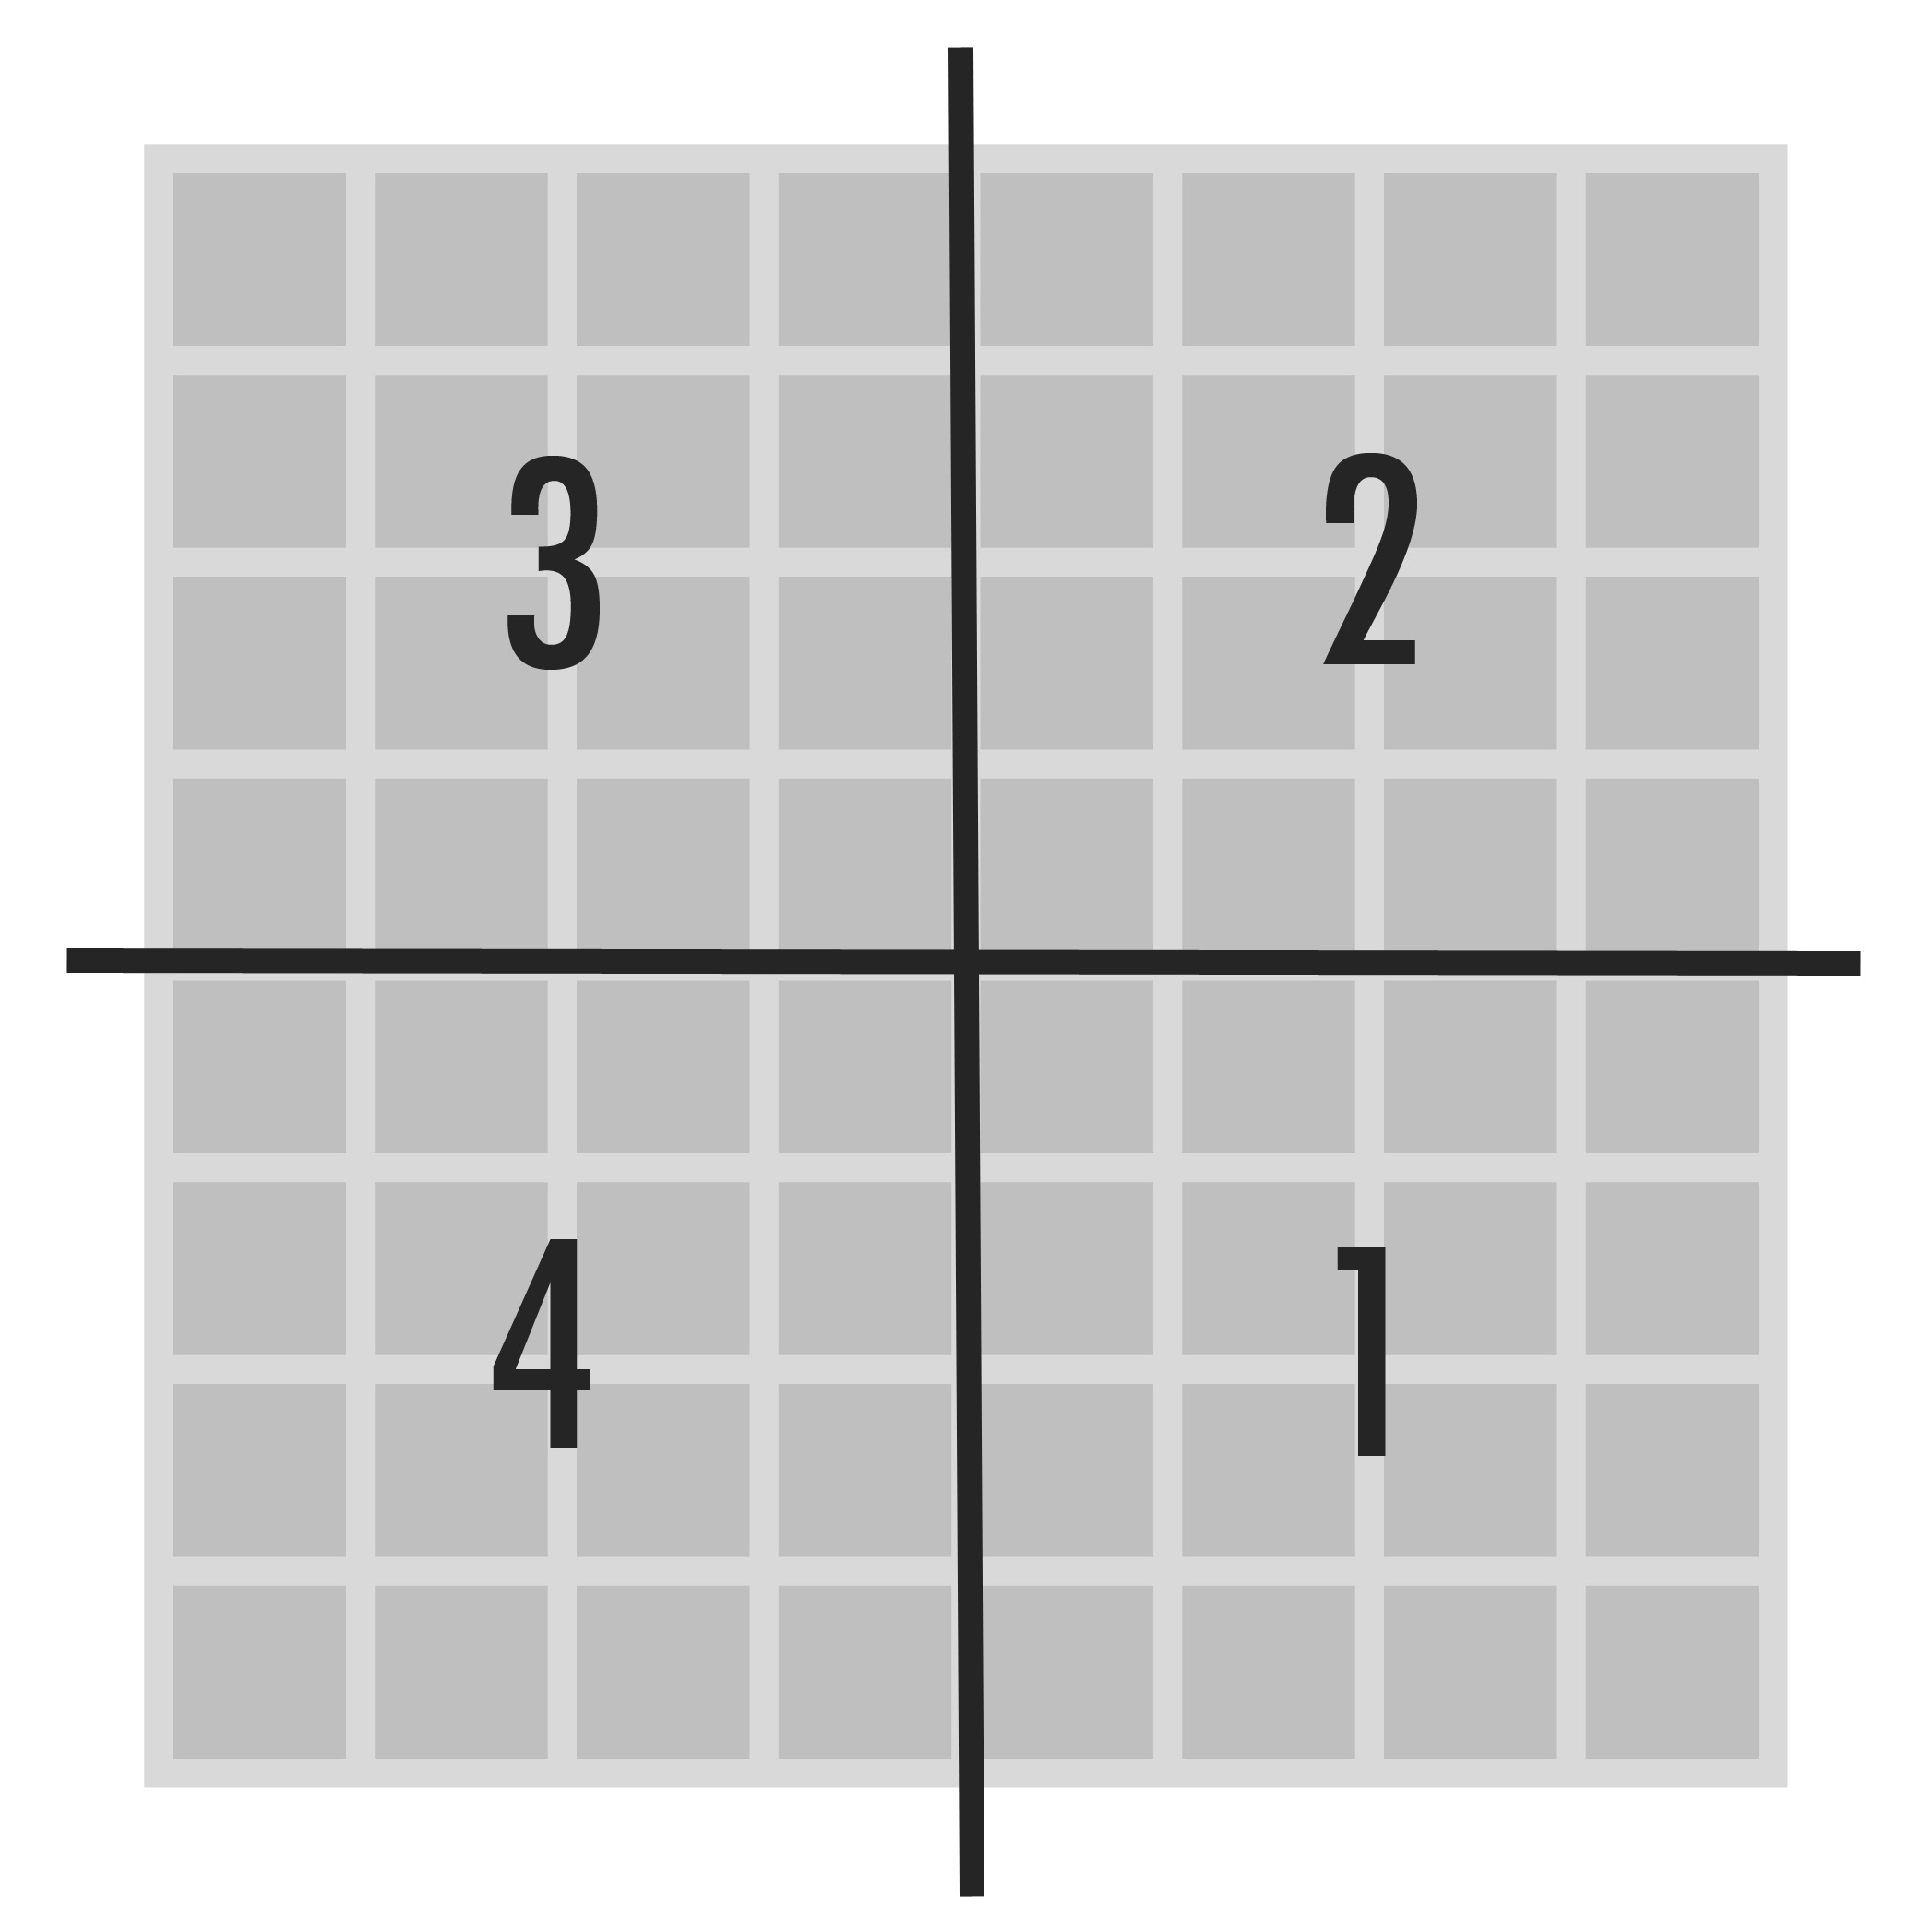 paper 4 Graph paper with one line every 4 mm on letter-sized paper graph paper with one line every 5 mm on letter-sized paper graph paper with one line every 5 mm and heavy.